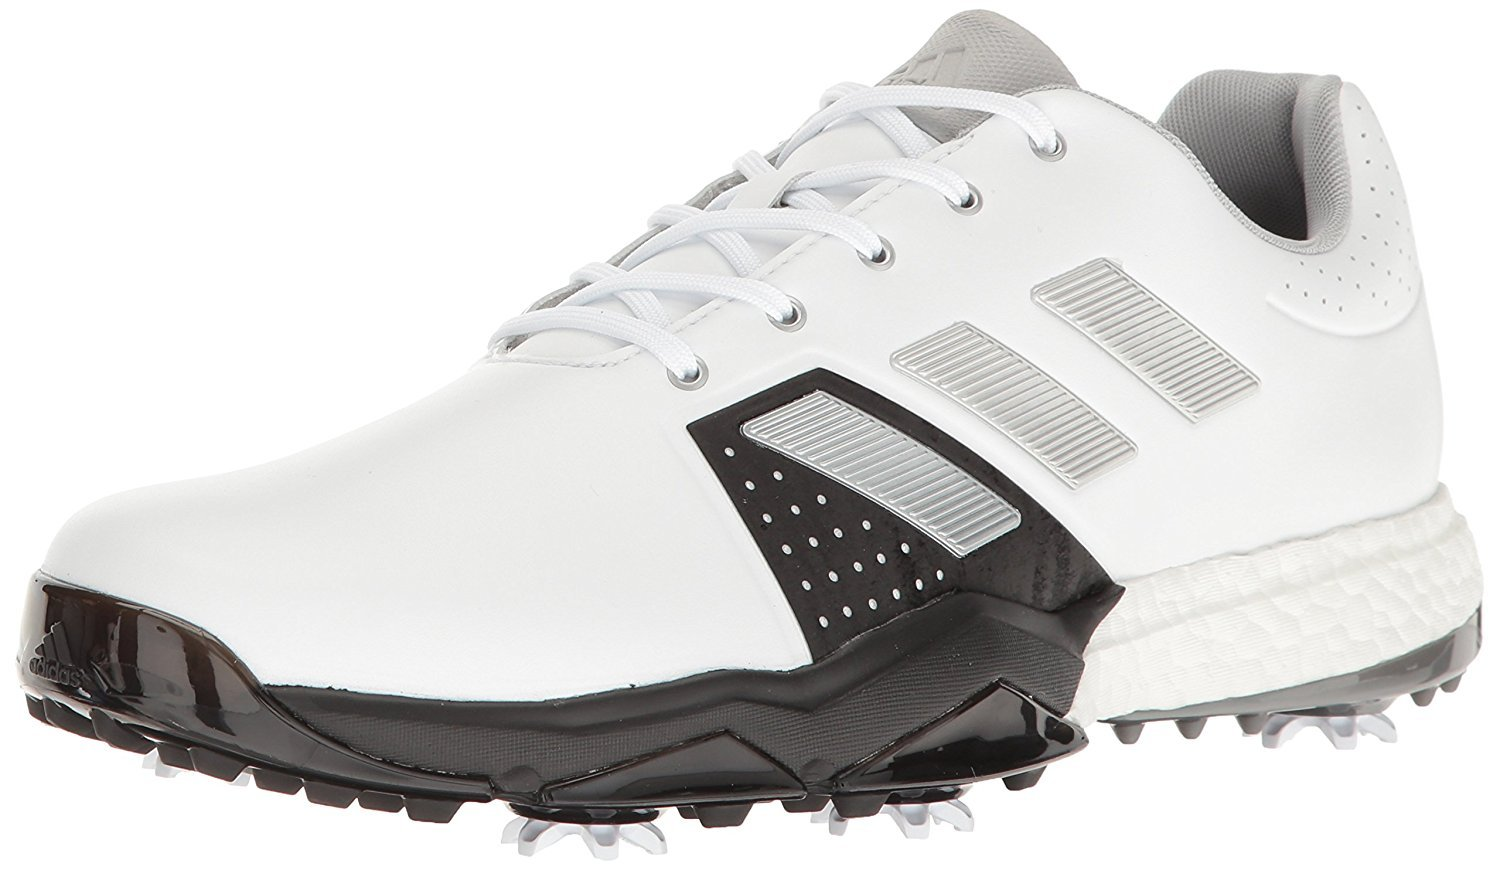 adidas Men's Adipower Boost 3 Golf Shoe, White/Silver Metallic/Black, 10.5 M US by adidas